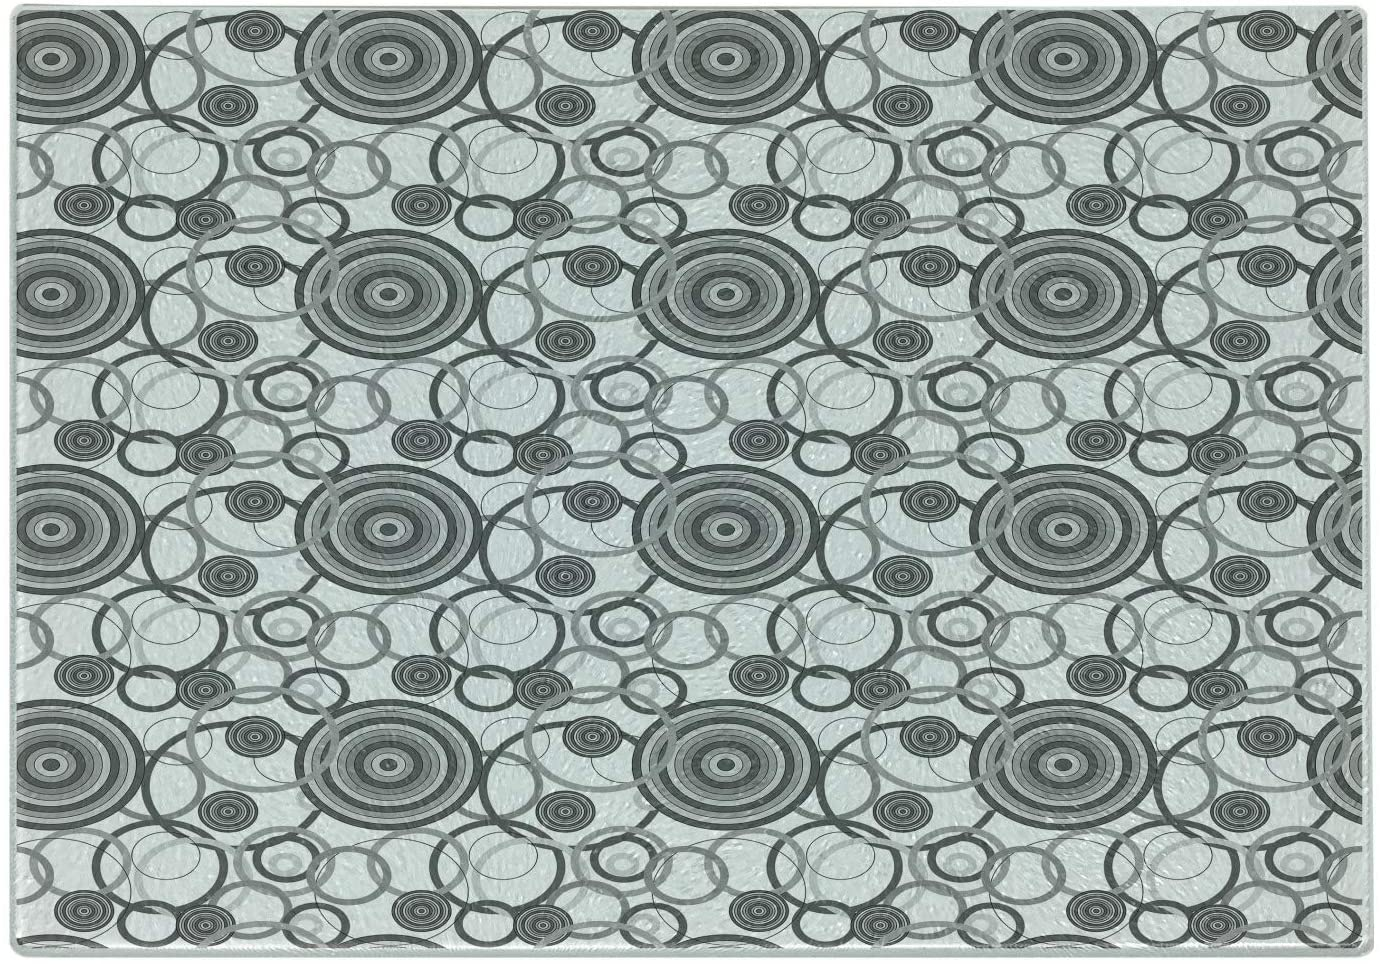 Lunarable Grey Cutting Board, Swirling Circles in Movement Retro Style Simple Modern Patterns Graphic Print Home, Decorative Tempered Glass Cutting and Serving Board, Small Size, Grey White